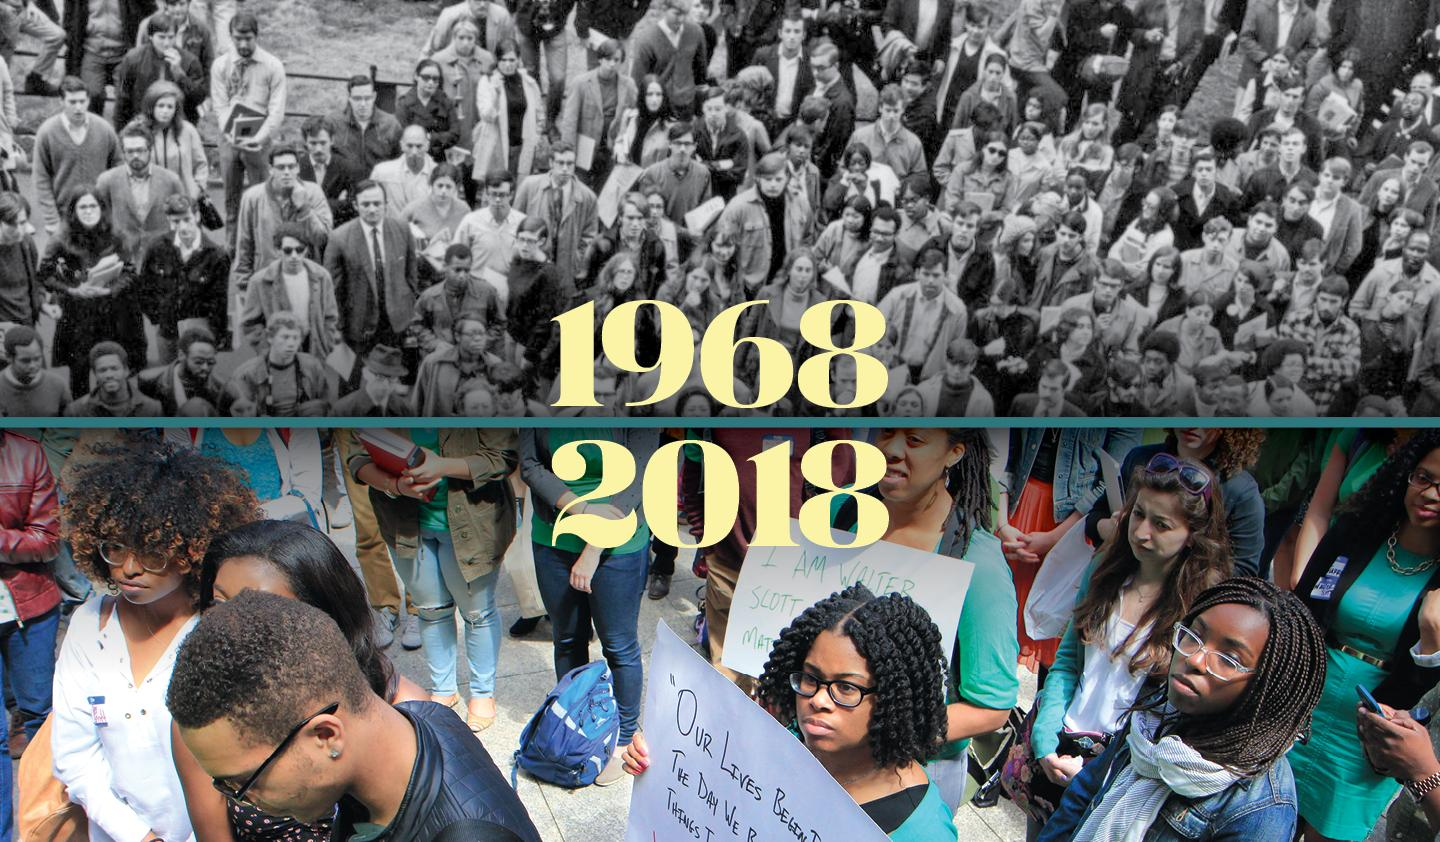 Demonstration in Washington Square Park in 1968, and BALSA demonstration against police violence in 2015.